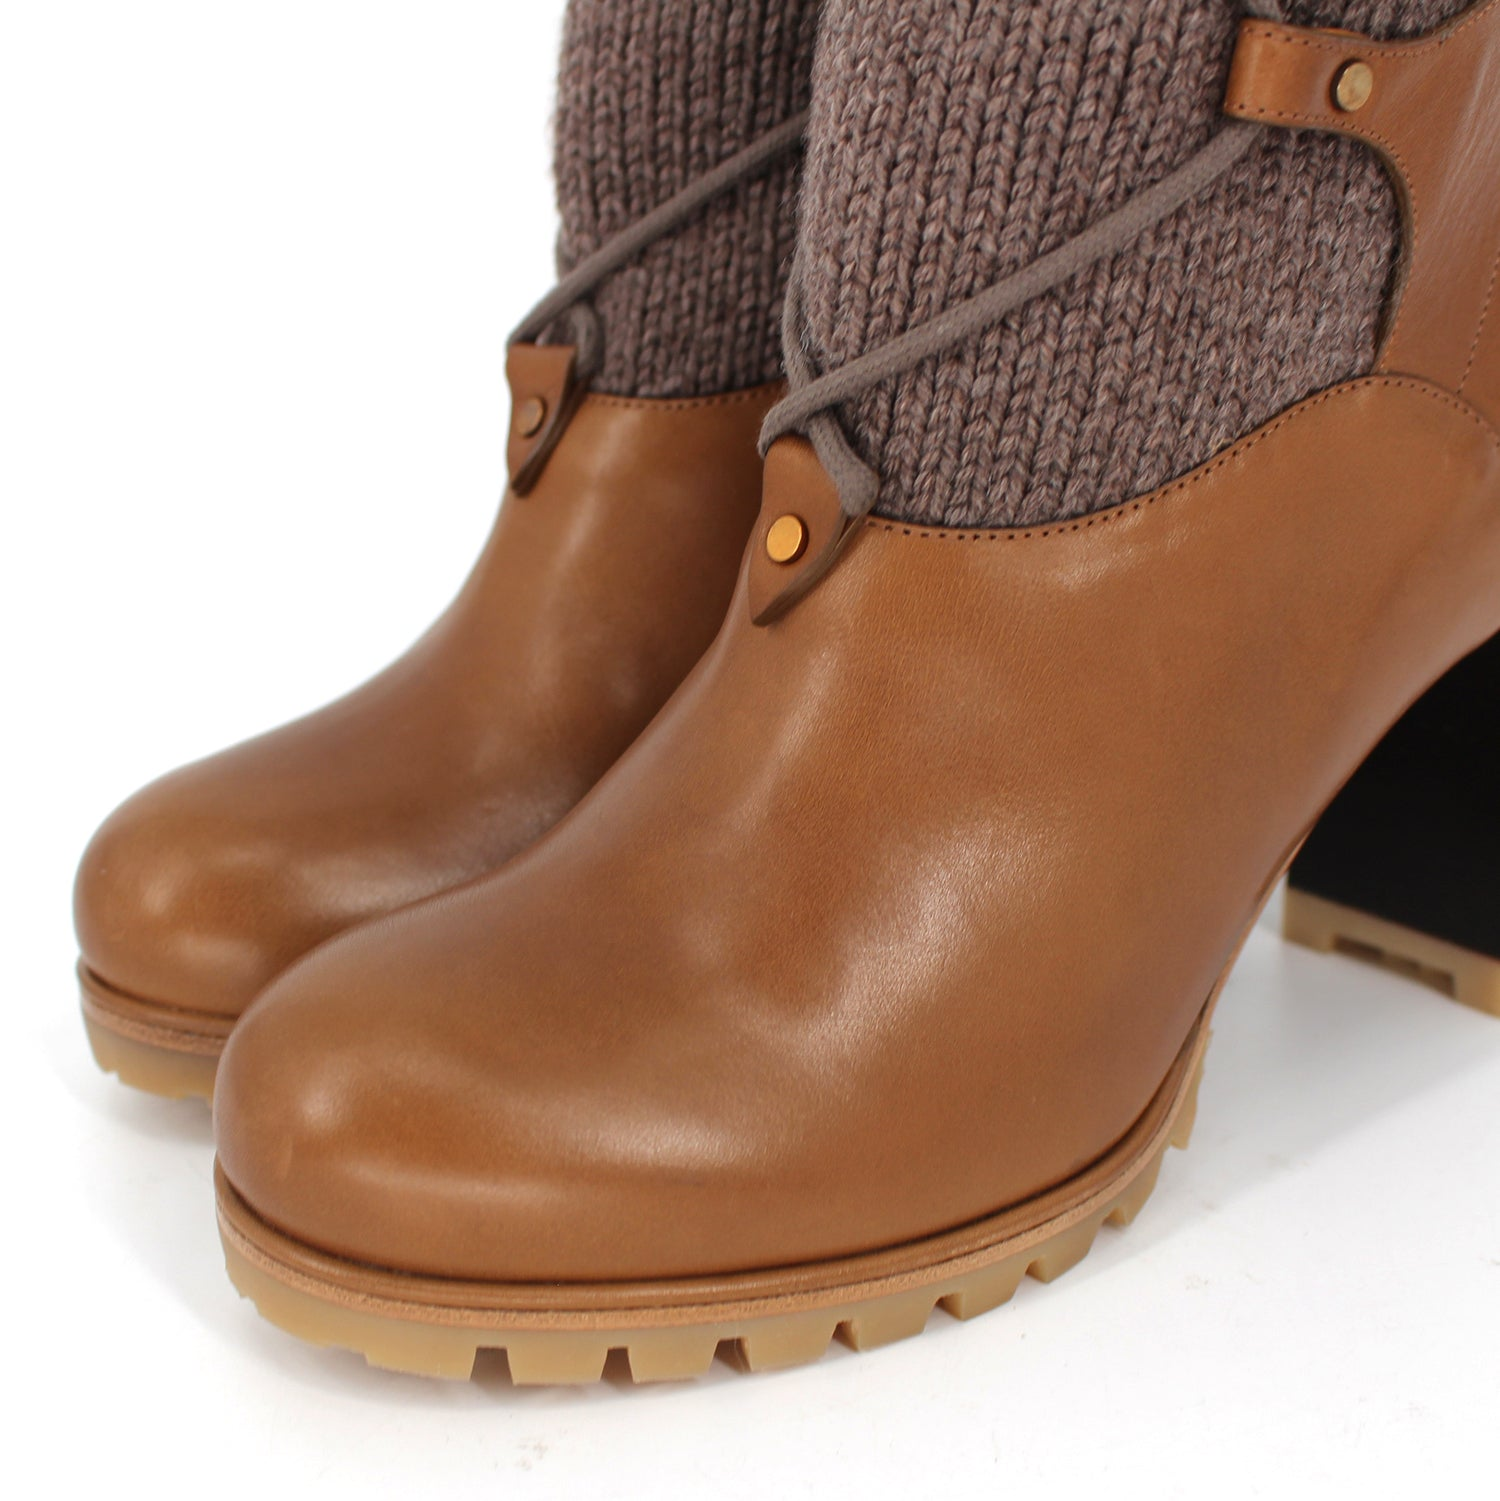 Chloé Foster Knit Boots